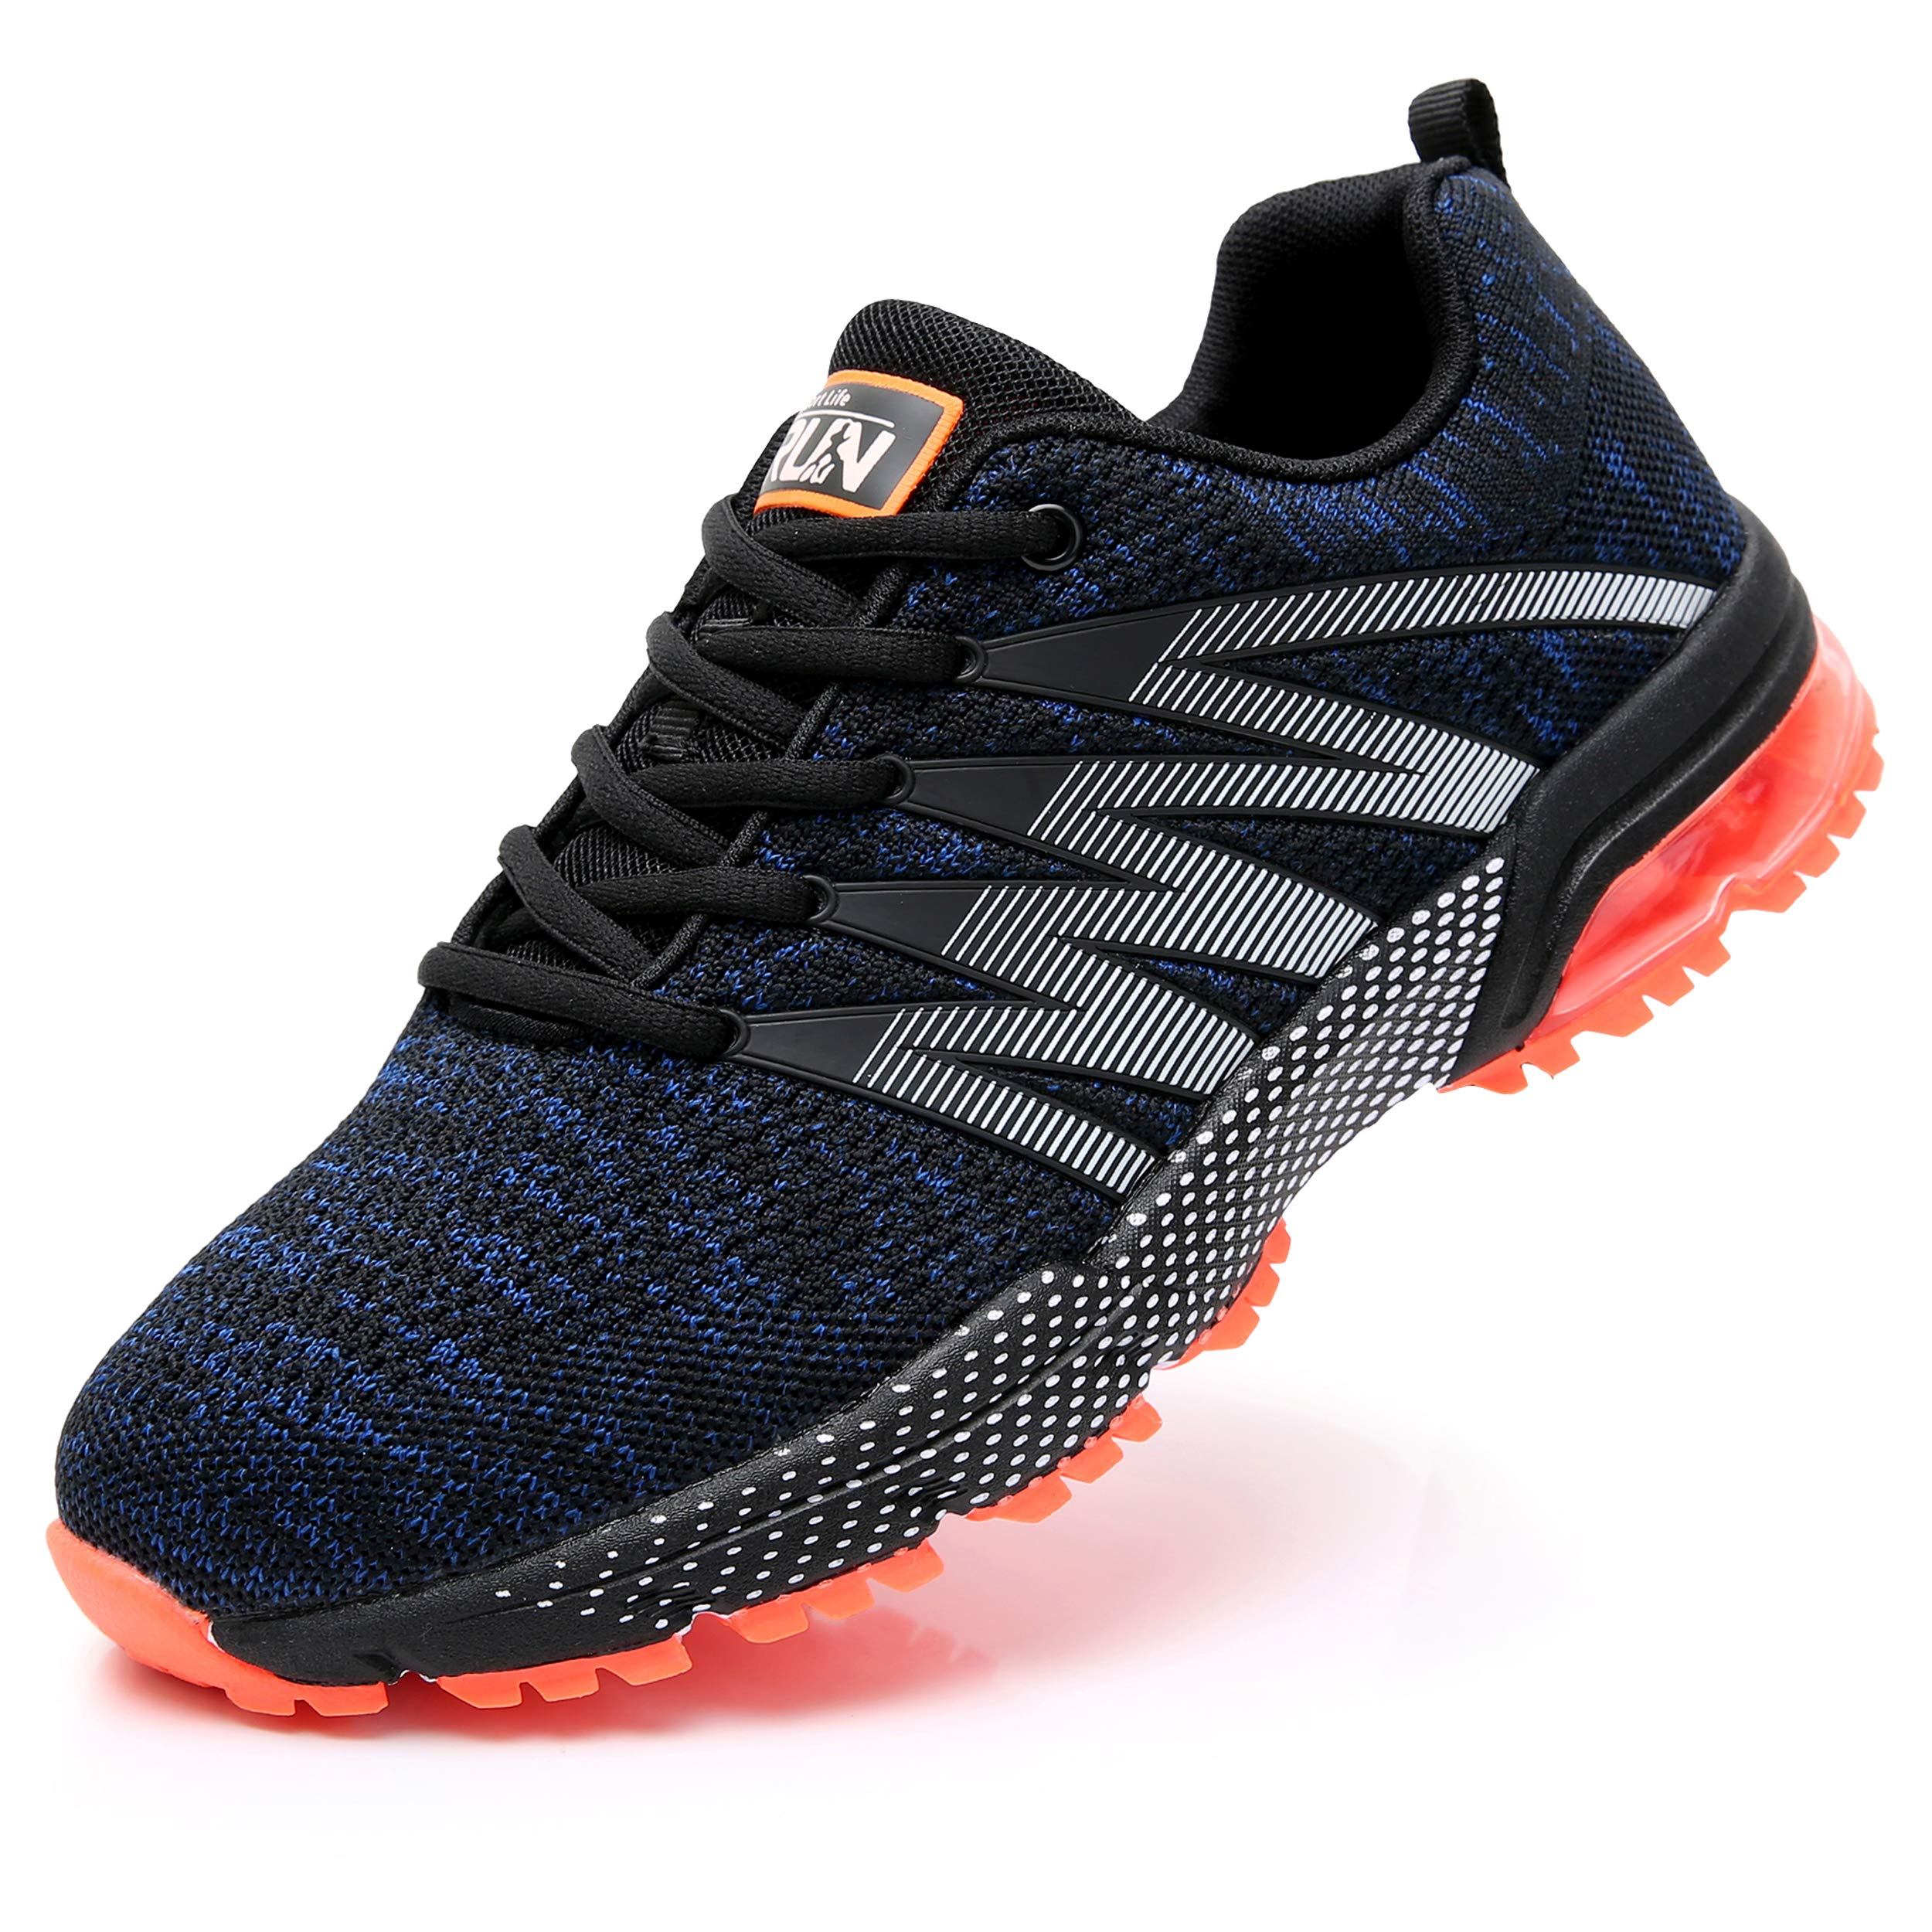 size 7 50% off website for discount Top Chaussures de running femme selon les notes Amazon.fr